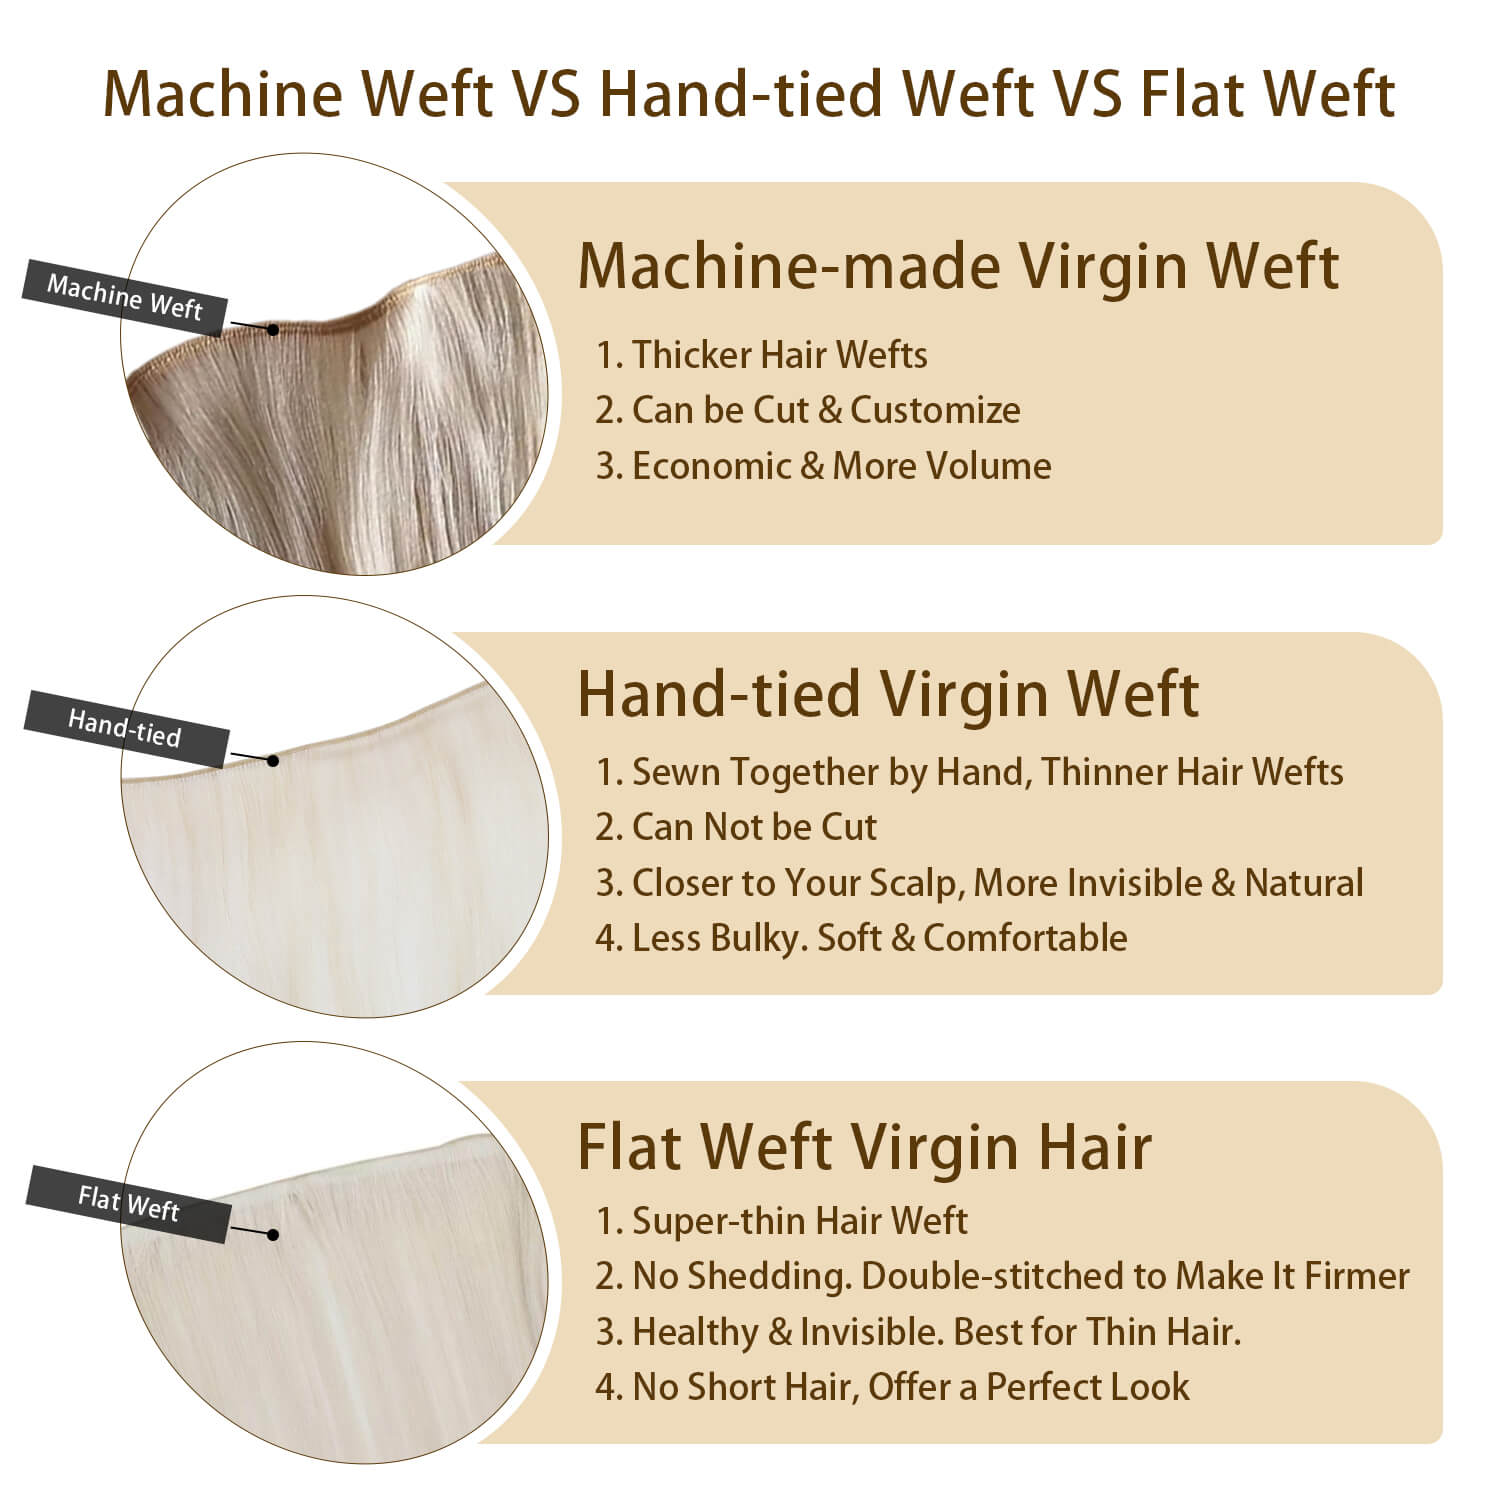 The Difference of Machine Made Weft and Flat Virgin Weft, and Handtied Virgin Weft